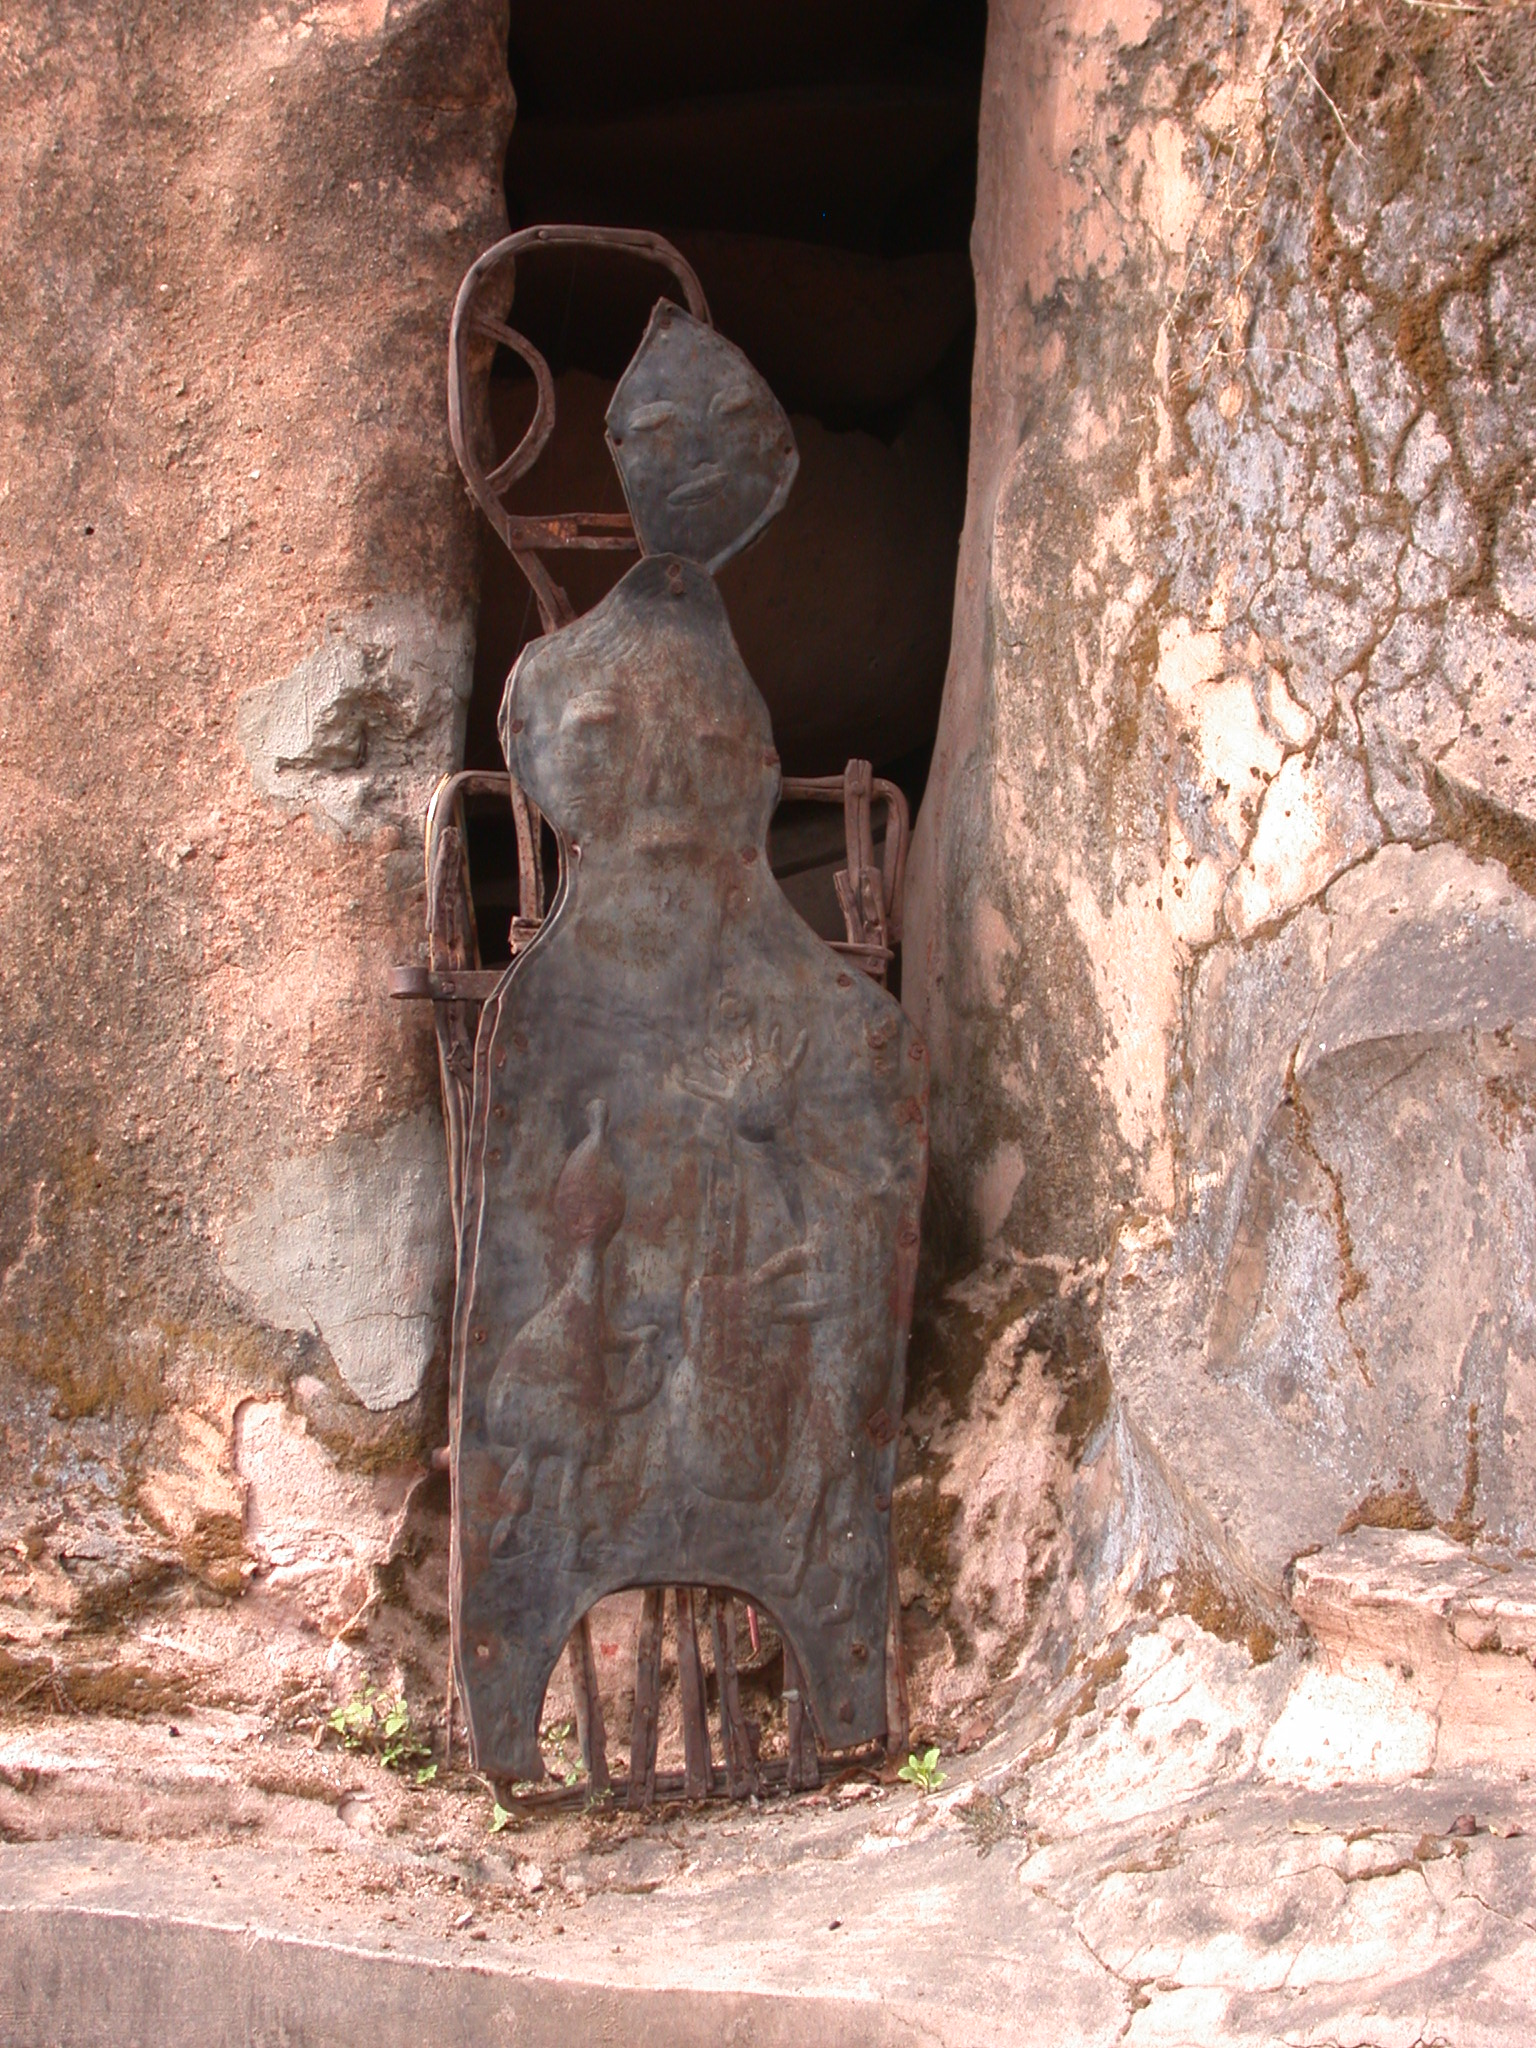 Closeup of Sculpture, Osun Sacred Grove, Oshogbo, Nigeria